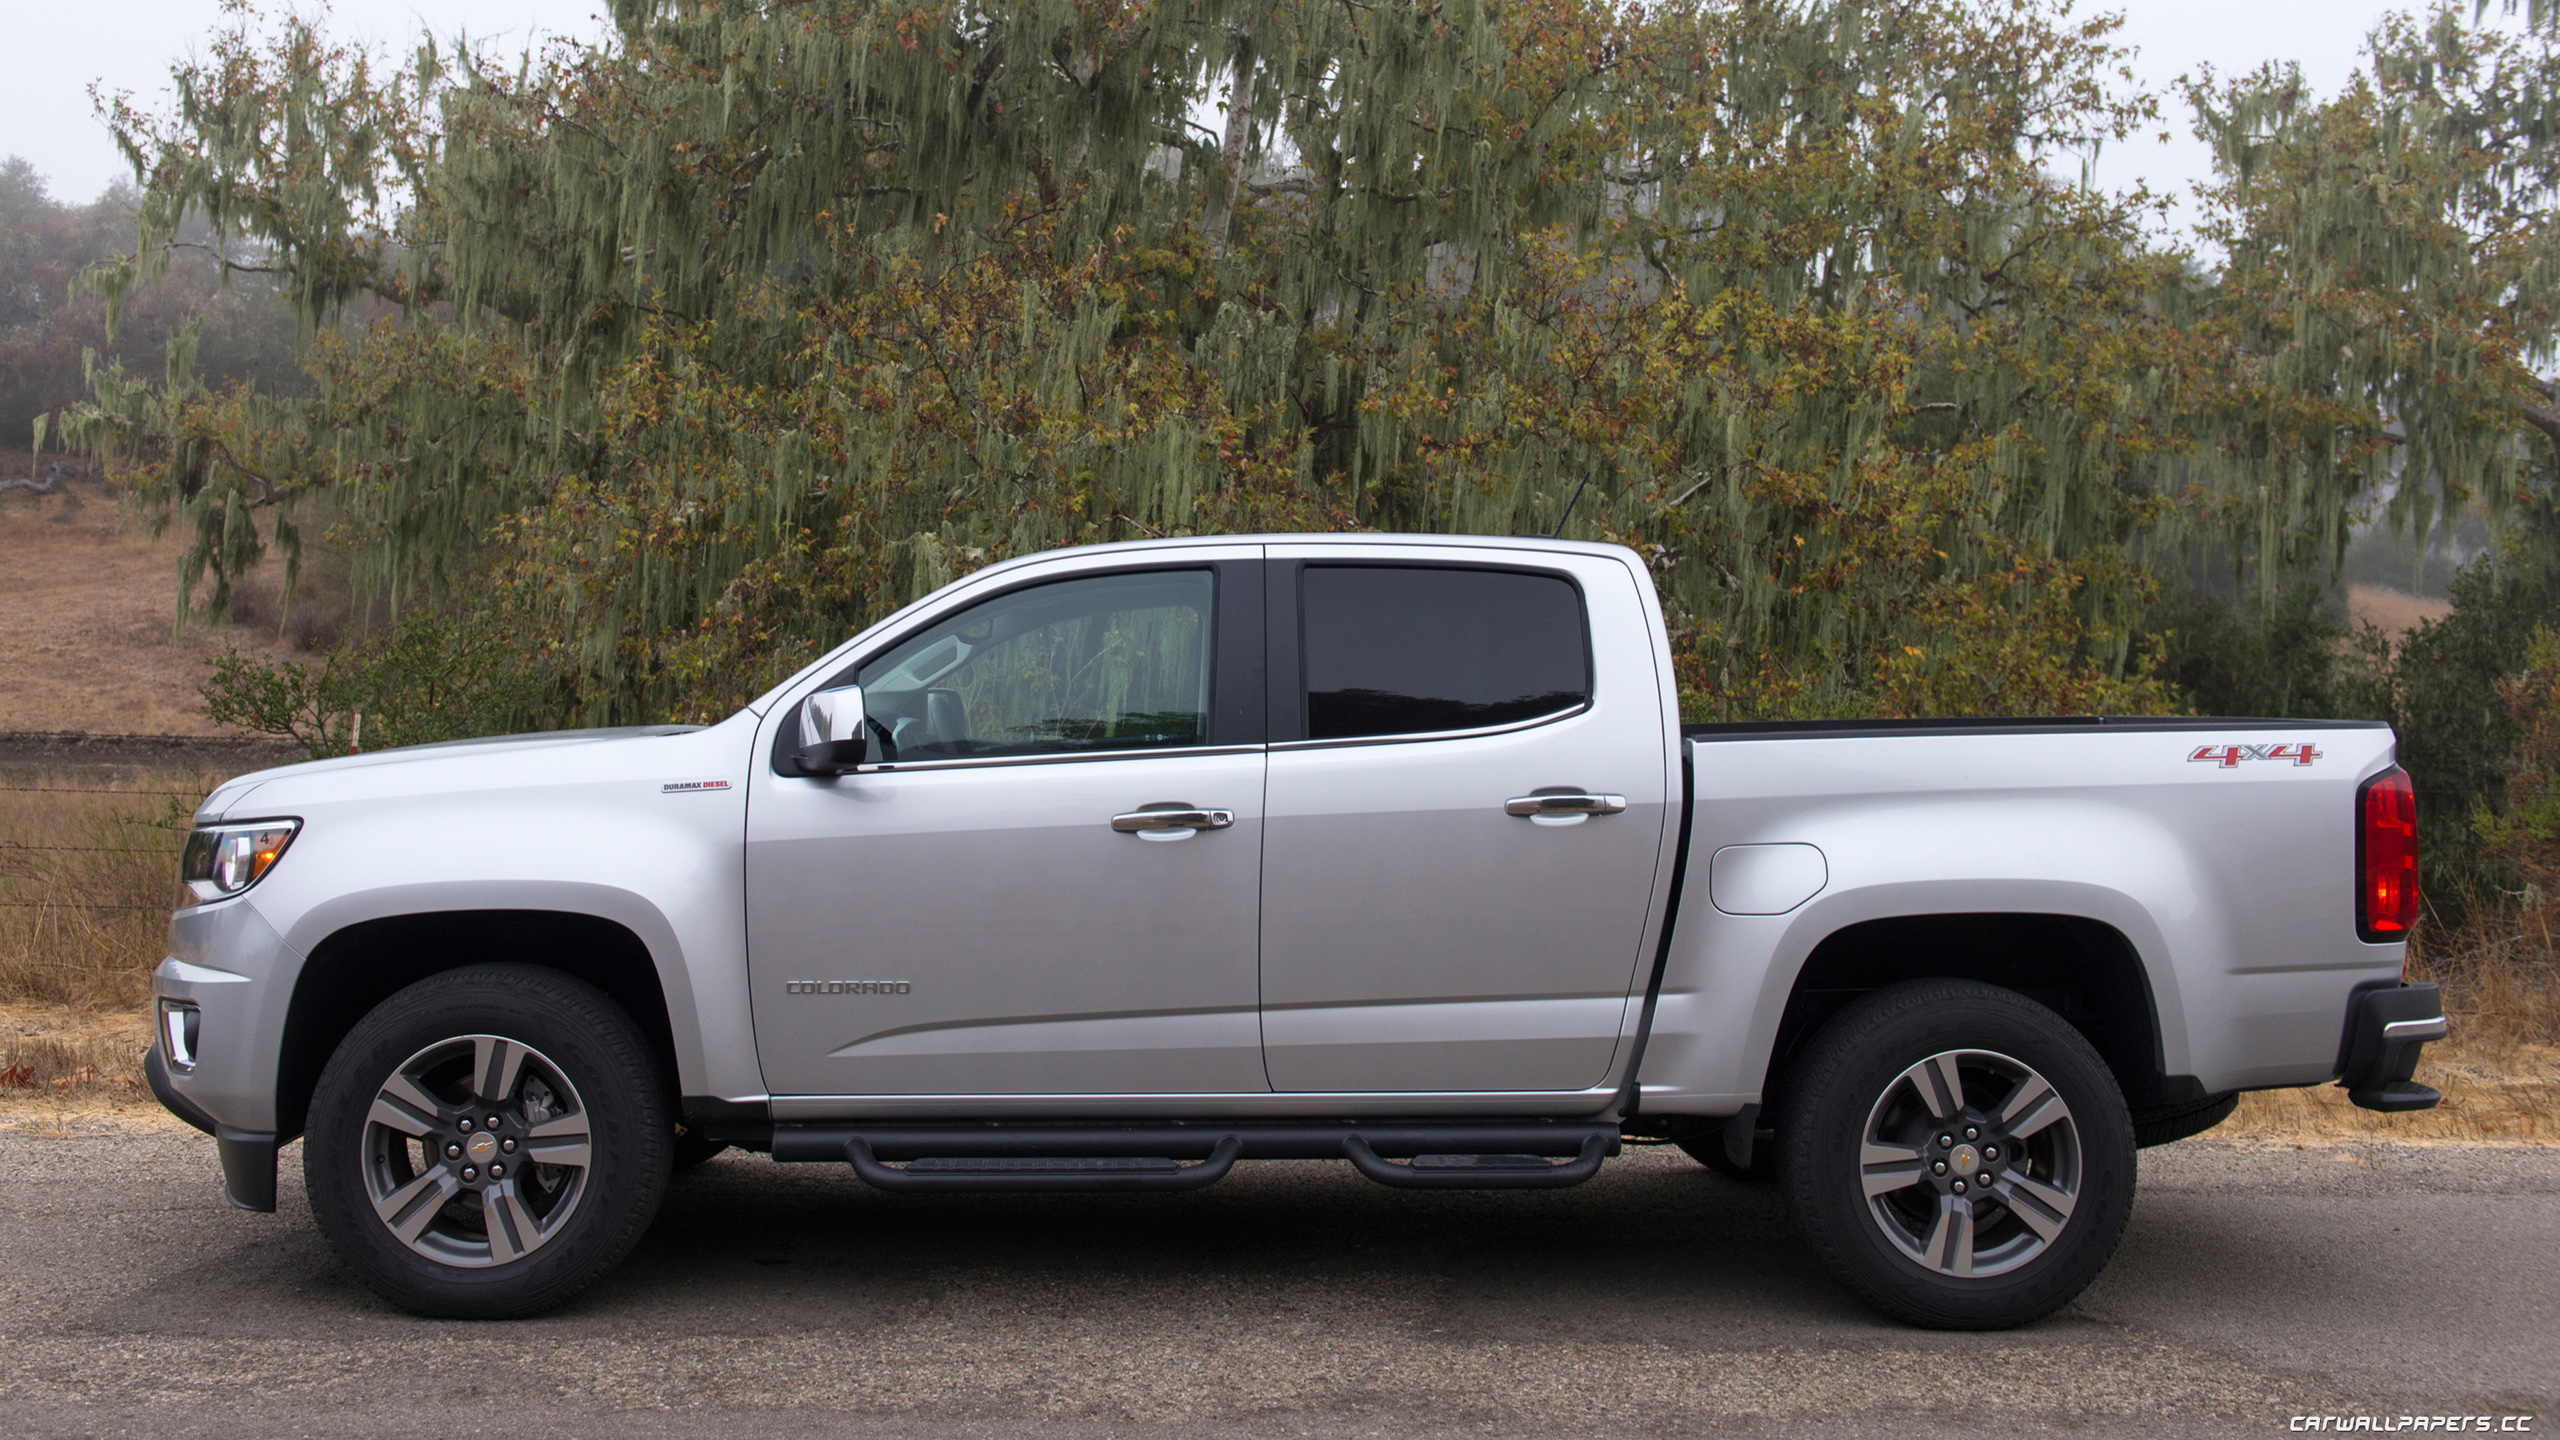 cars desktop wallpapers chevrolet colorado lt crew cab duramax diesel 2015. Black Bedroom Furniture Sets. Home Design Ideas